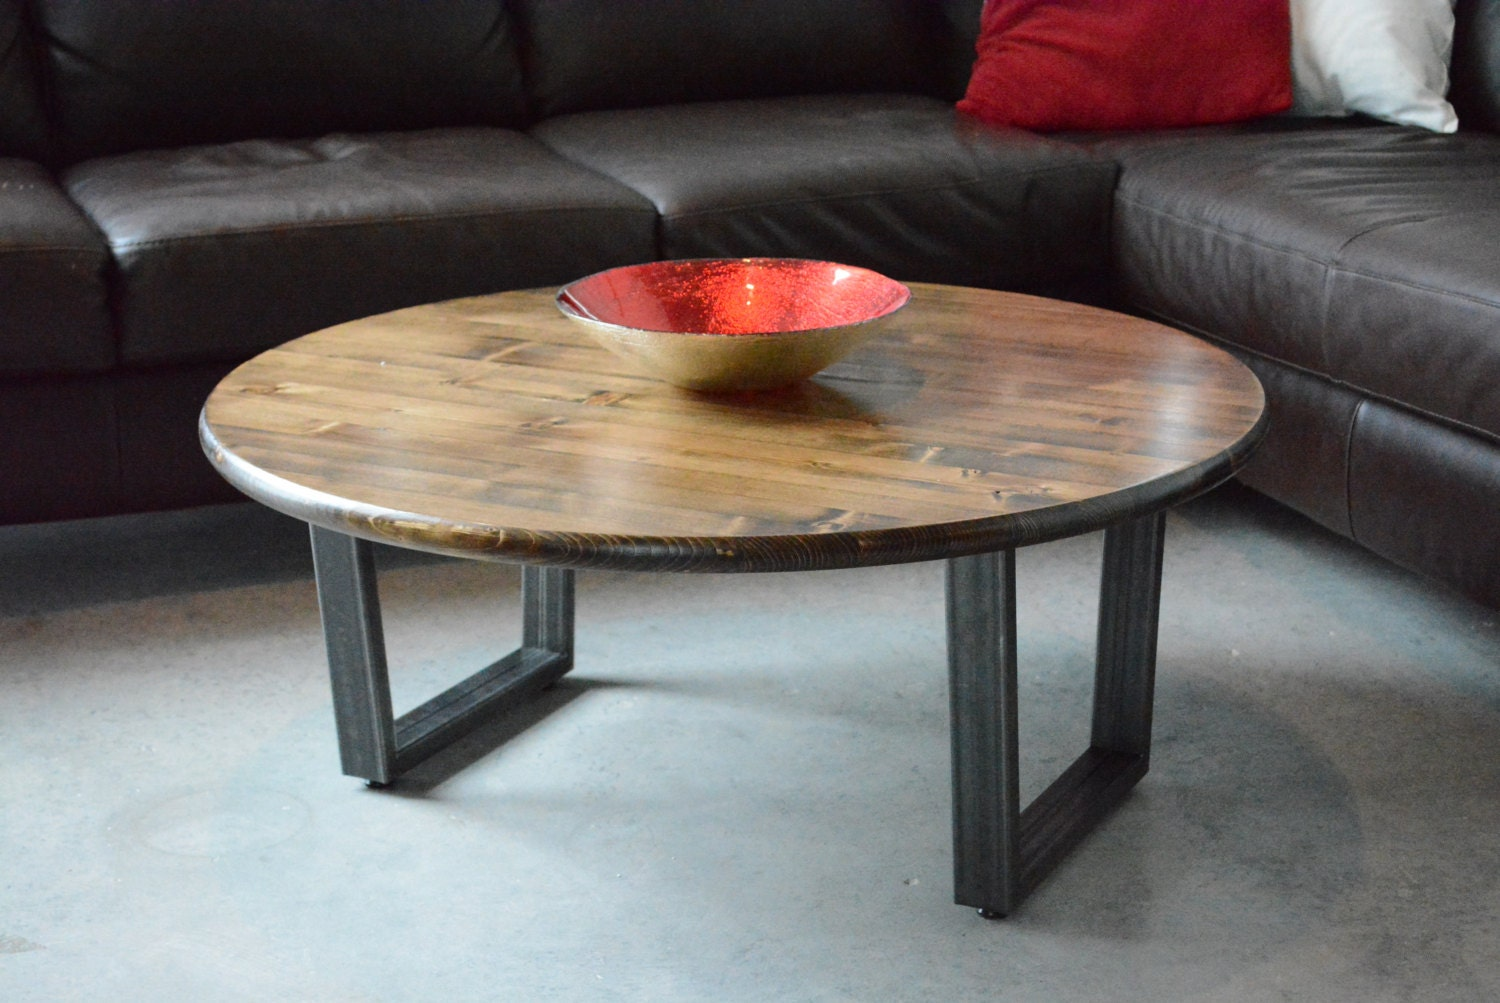 36 Round Coffee Table With Steel Legs By Groveandanchor On Etsy